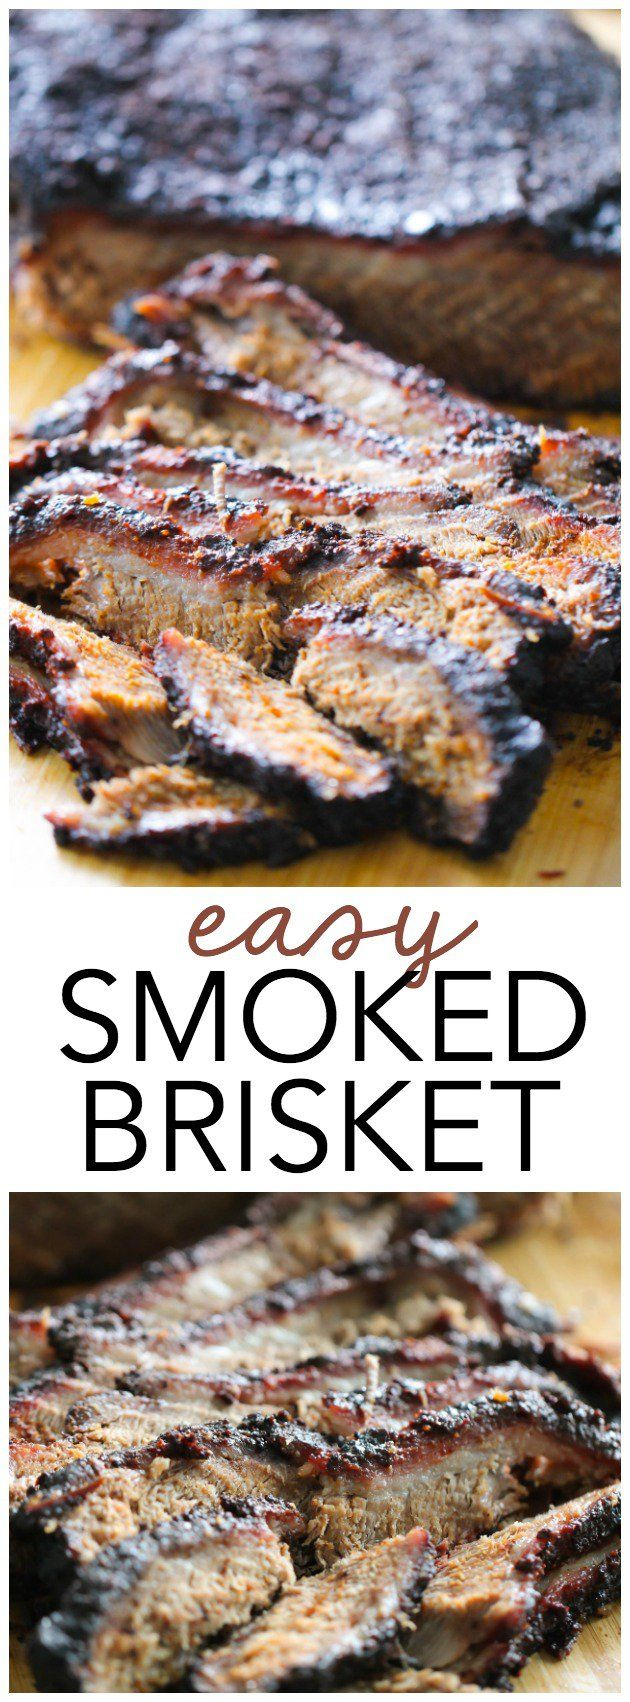 Easy Smoked BBQ Brisket from SixSistersStuff.com   Delicious smoked brisket with a brown sugar rub.